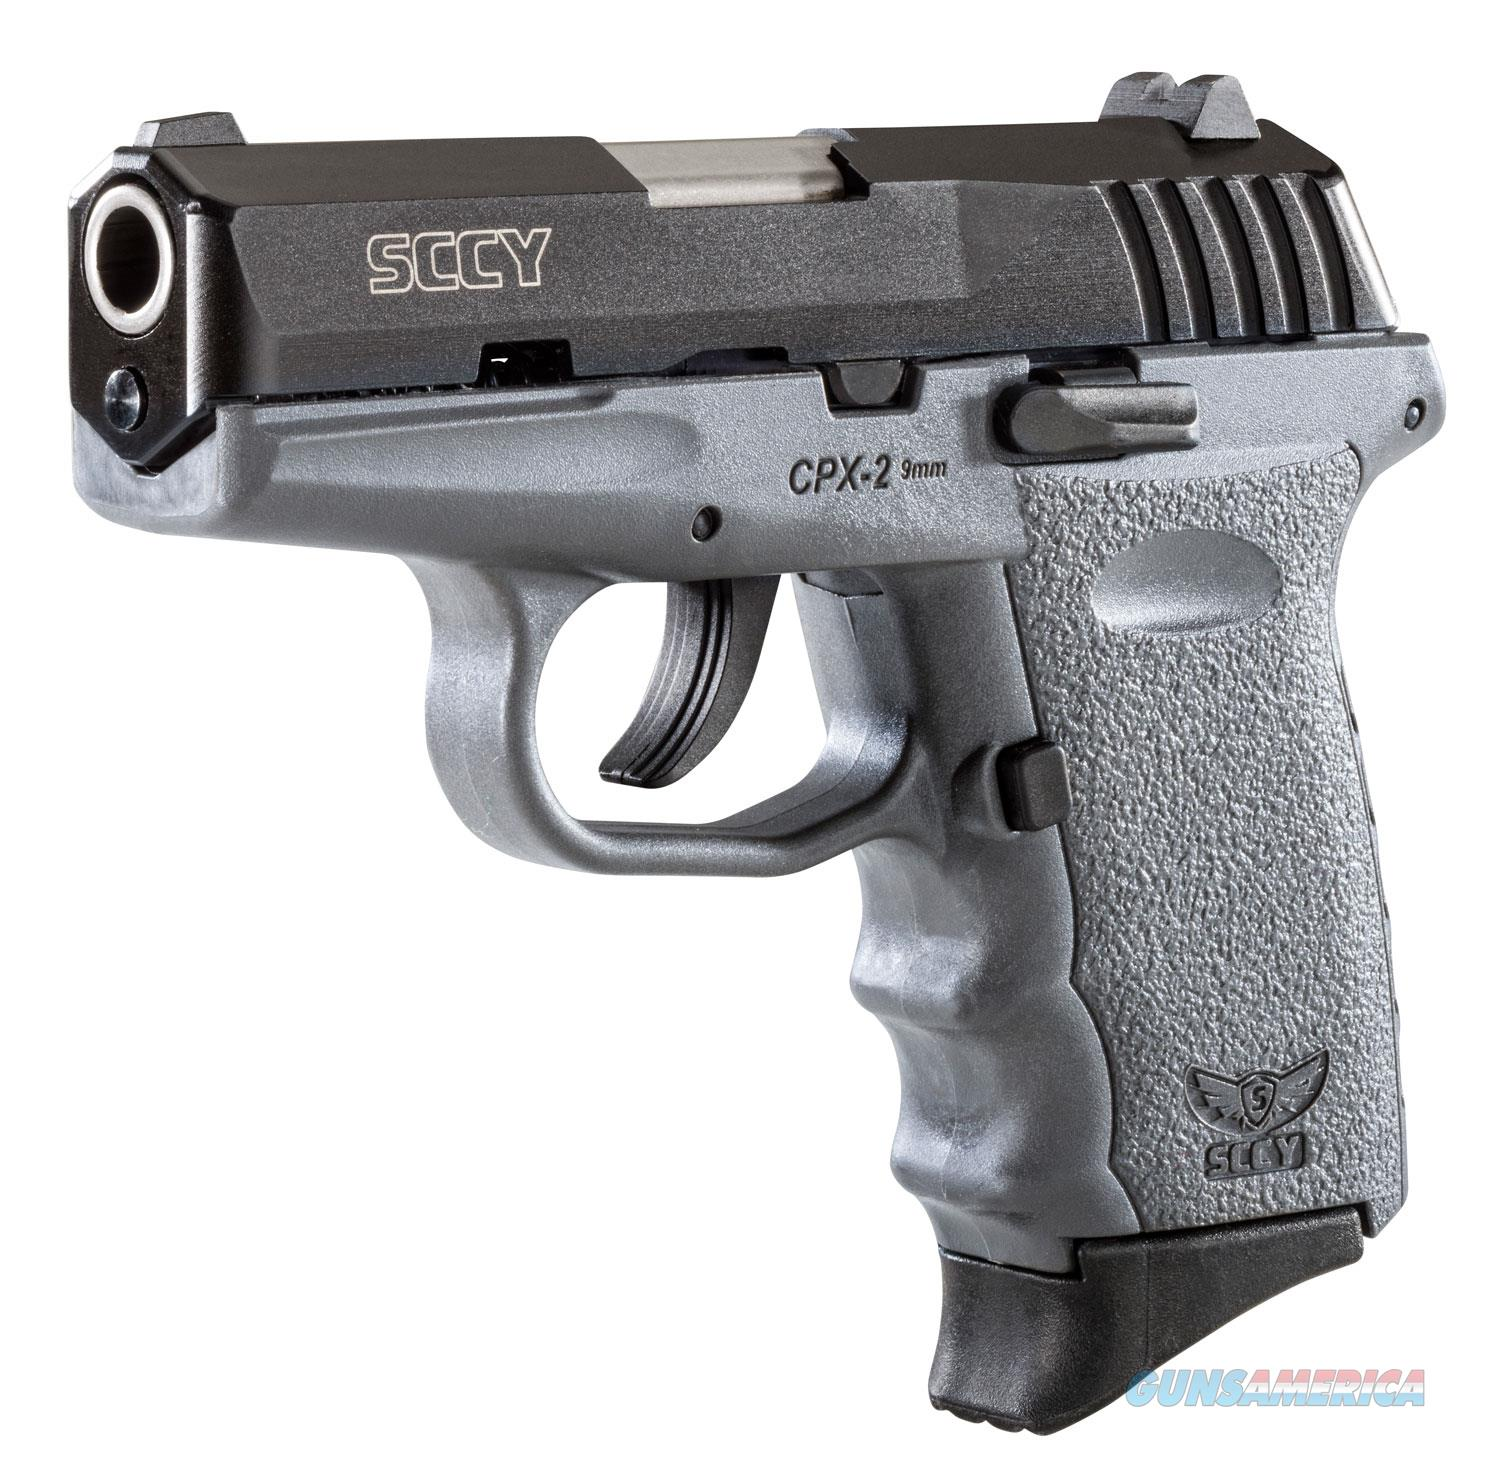 """Sccy Industries Cpx2cbsg Cpx-2 Double 9Mm 3.1"""" 10+1 Gray Polymer Grip/Frame Grip Black Nitride Stainless Steel CPX 2CBSG  Guns > Pistols > S Misc Pistols"""